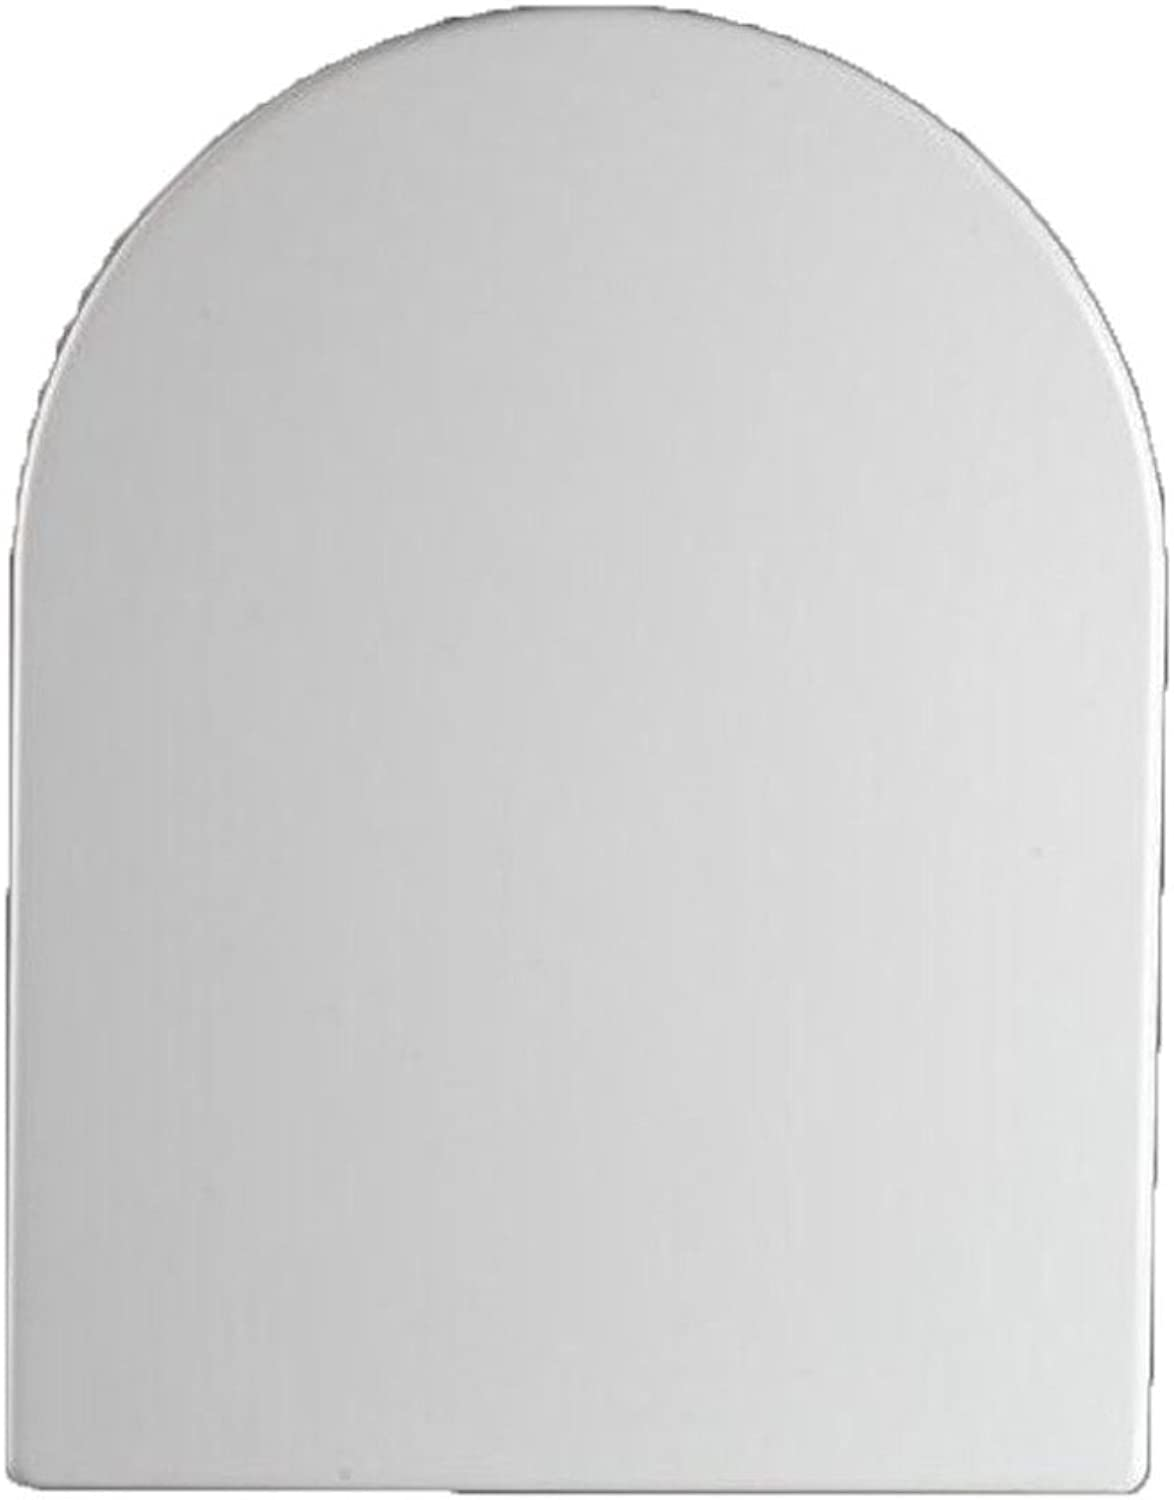 Toilet lid Universal Toilet Seat U-shaped Step-down Mute Antibacterial Top-loading, White-42-4936cm